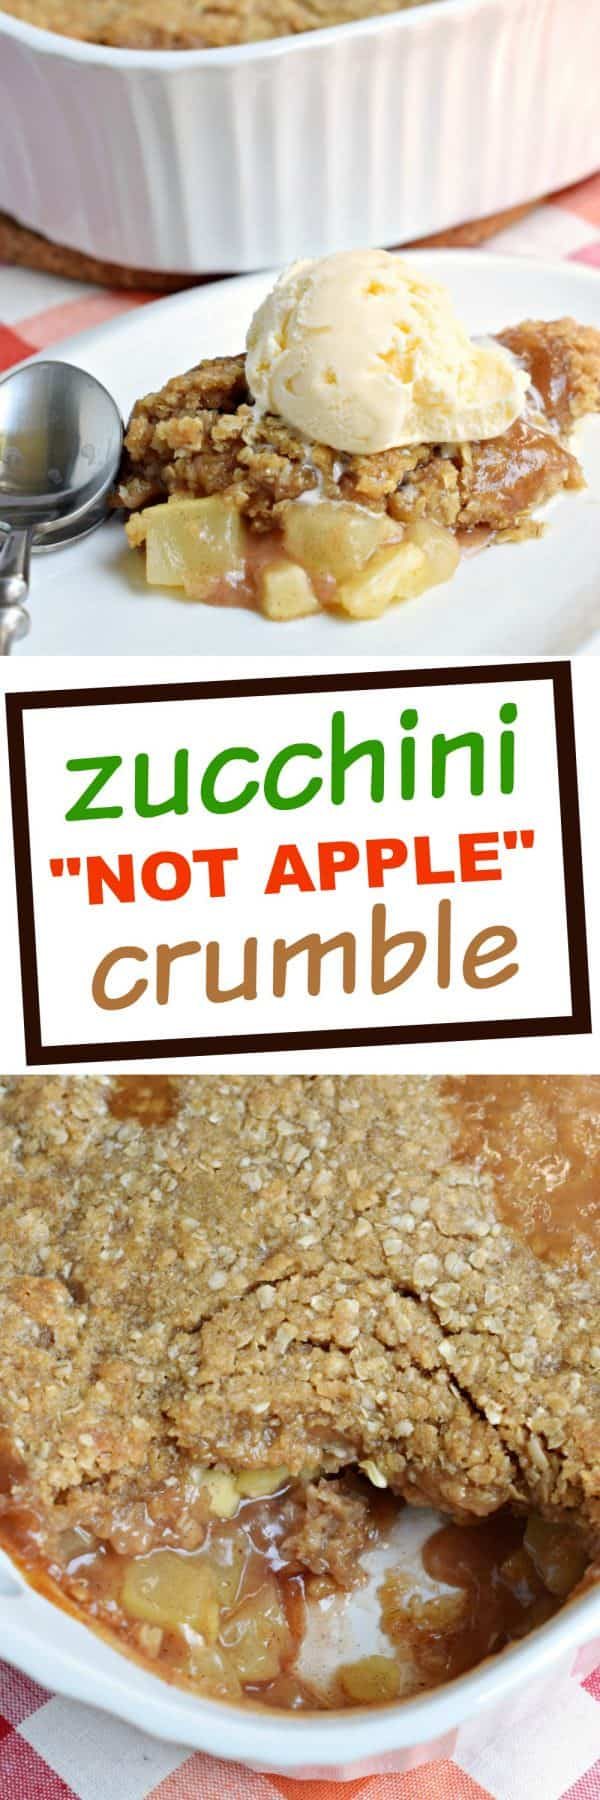 Don't tell anyone, but this hot Zucchini Crumble recipe is like apple pie, but with veggies! Sweet, caramel zucchini with a crunchy cinnamon crumble on top, this is the perfect comfort food dessert!